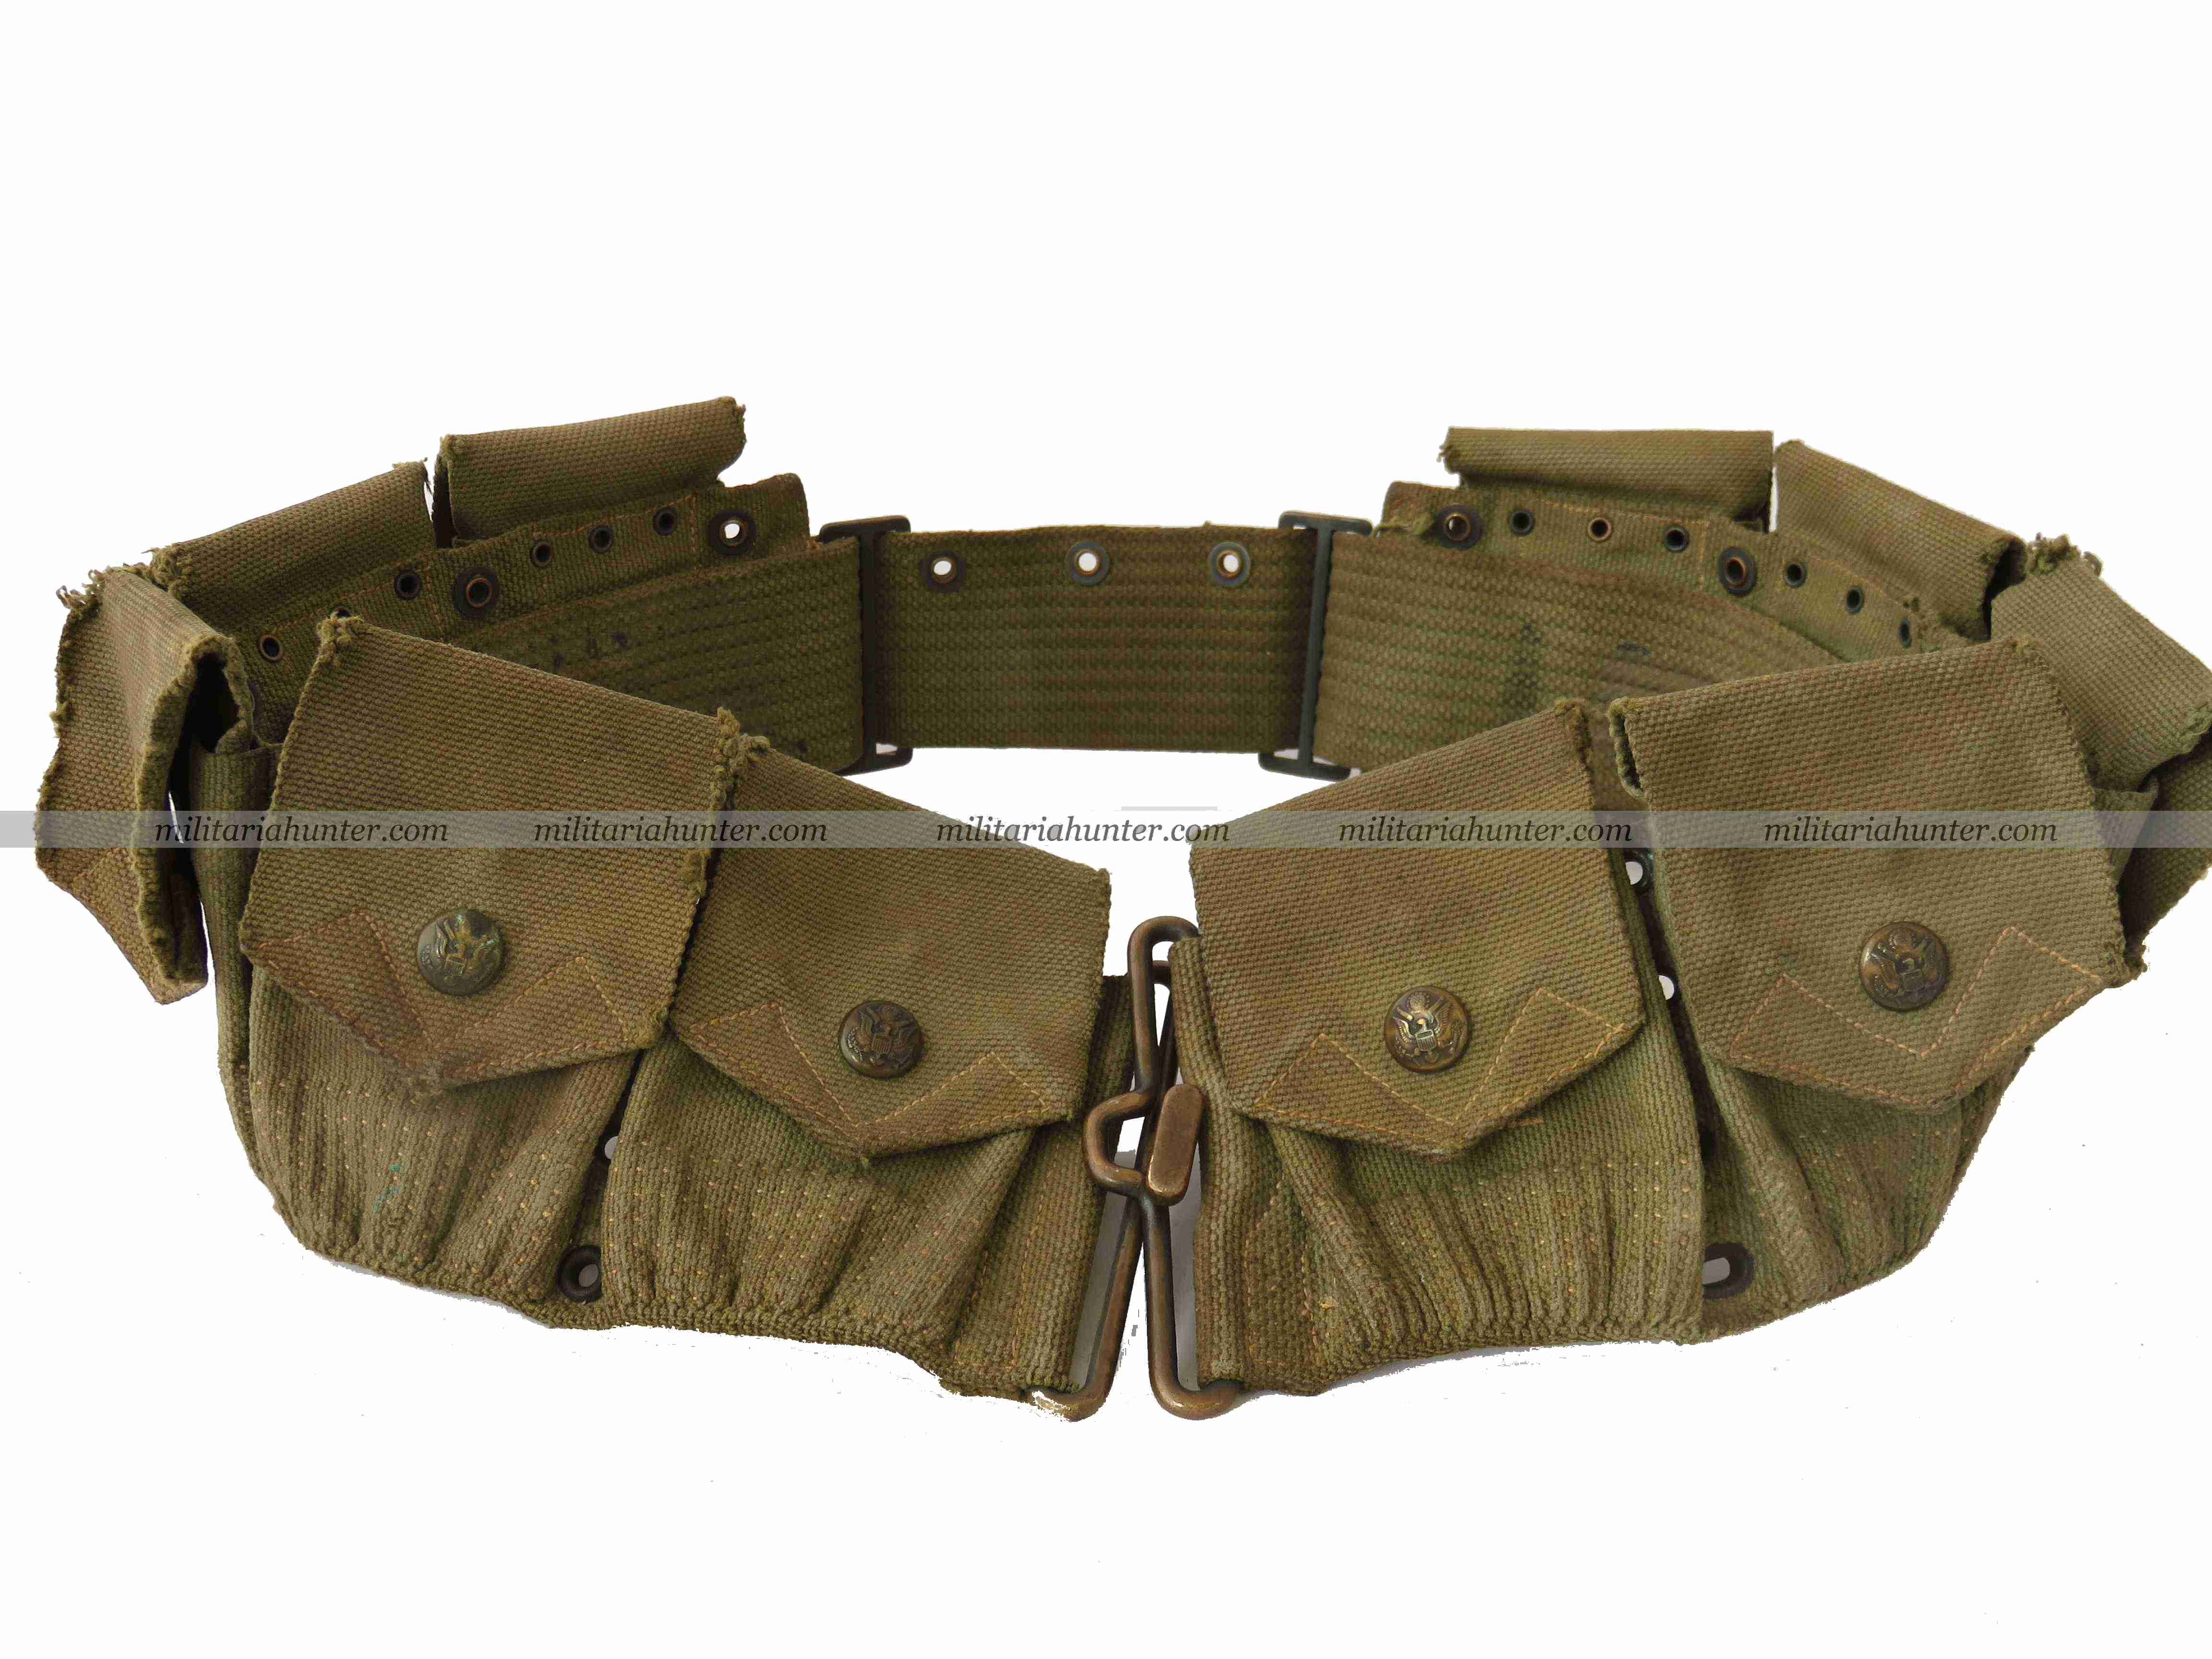 militaria : US WW1 M1910 Eagle Snap ammo belt green